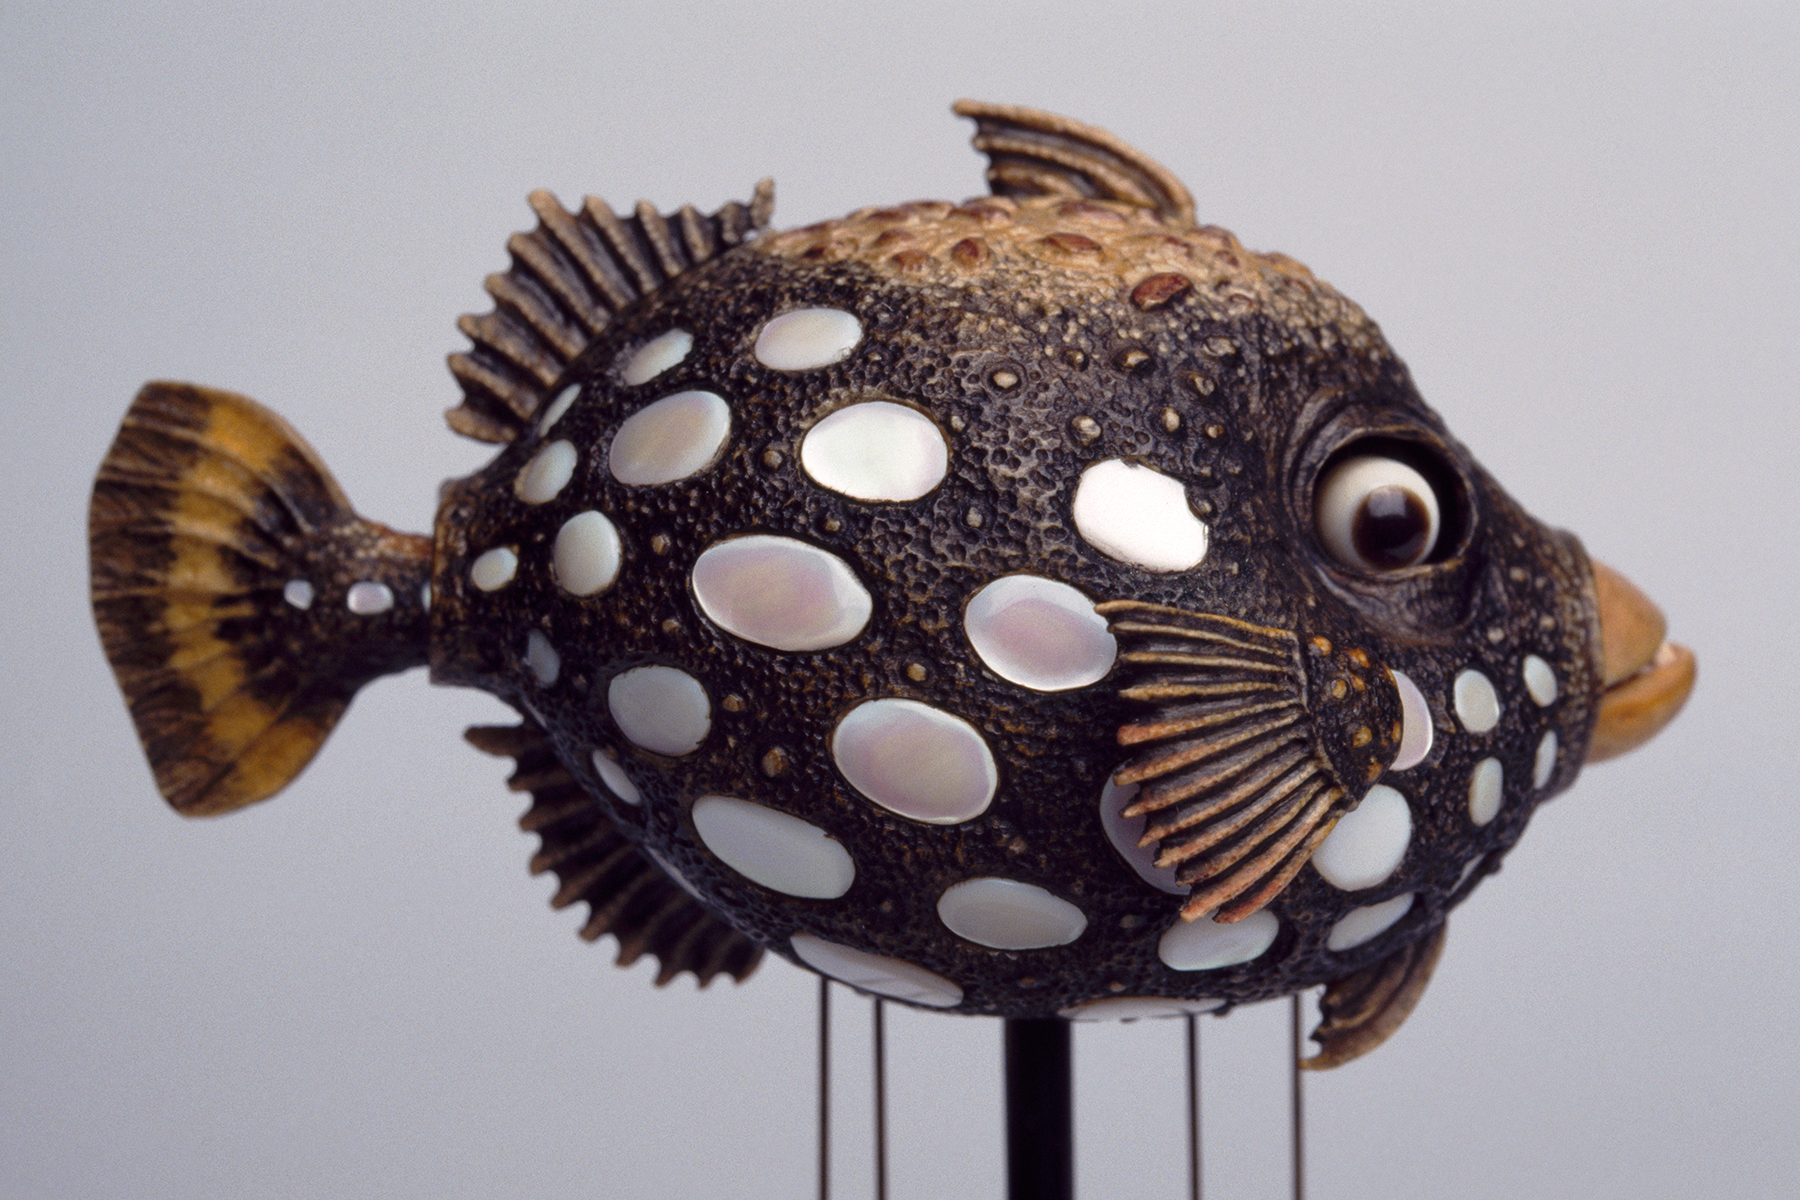 DavidBeck-TriggerFish_35mm_1_web.jpg